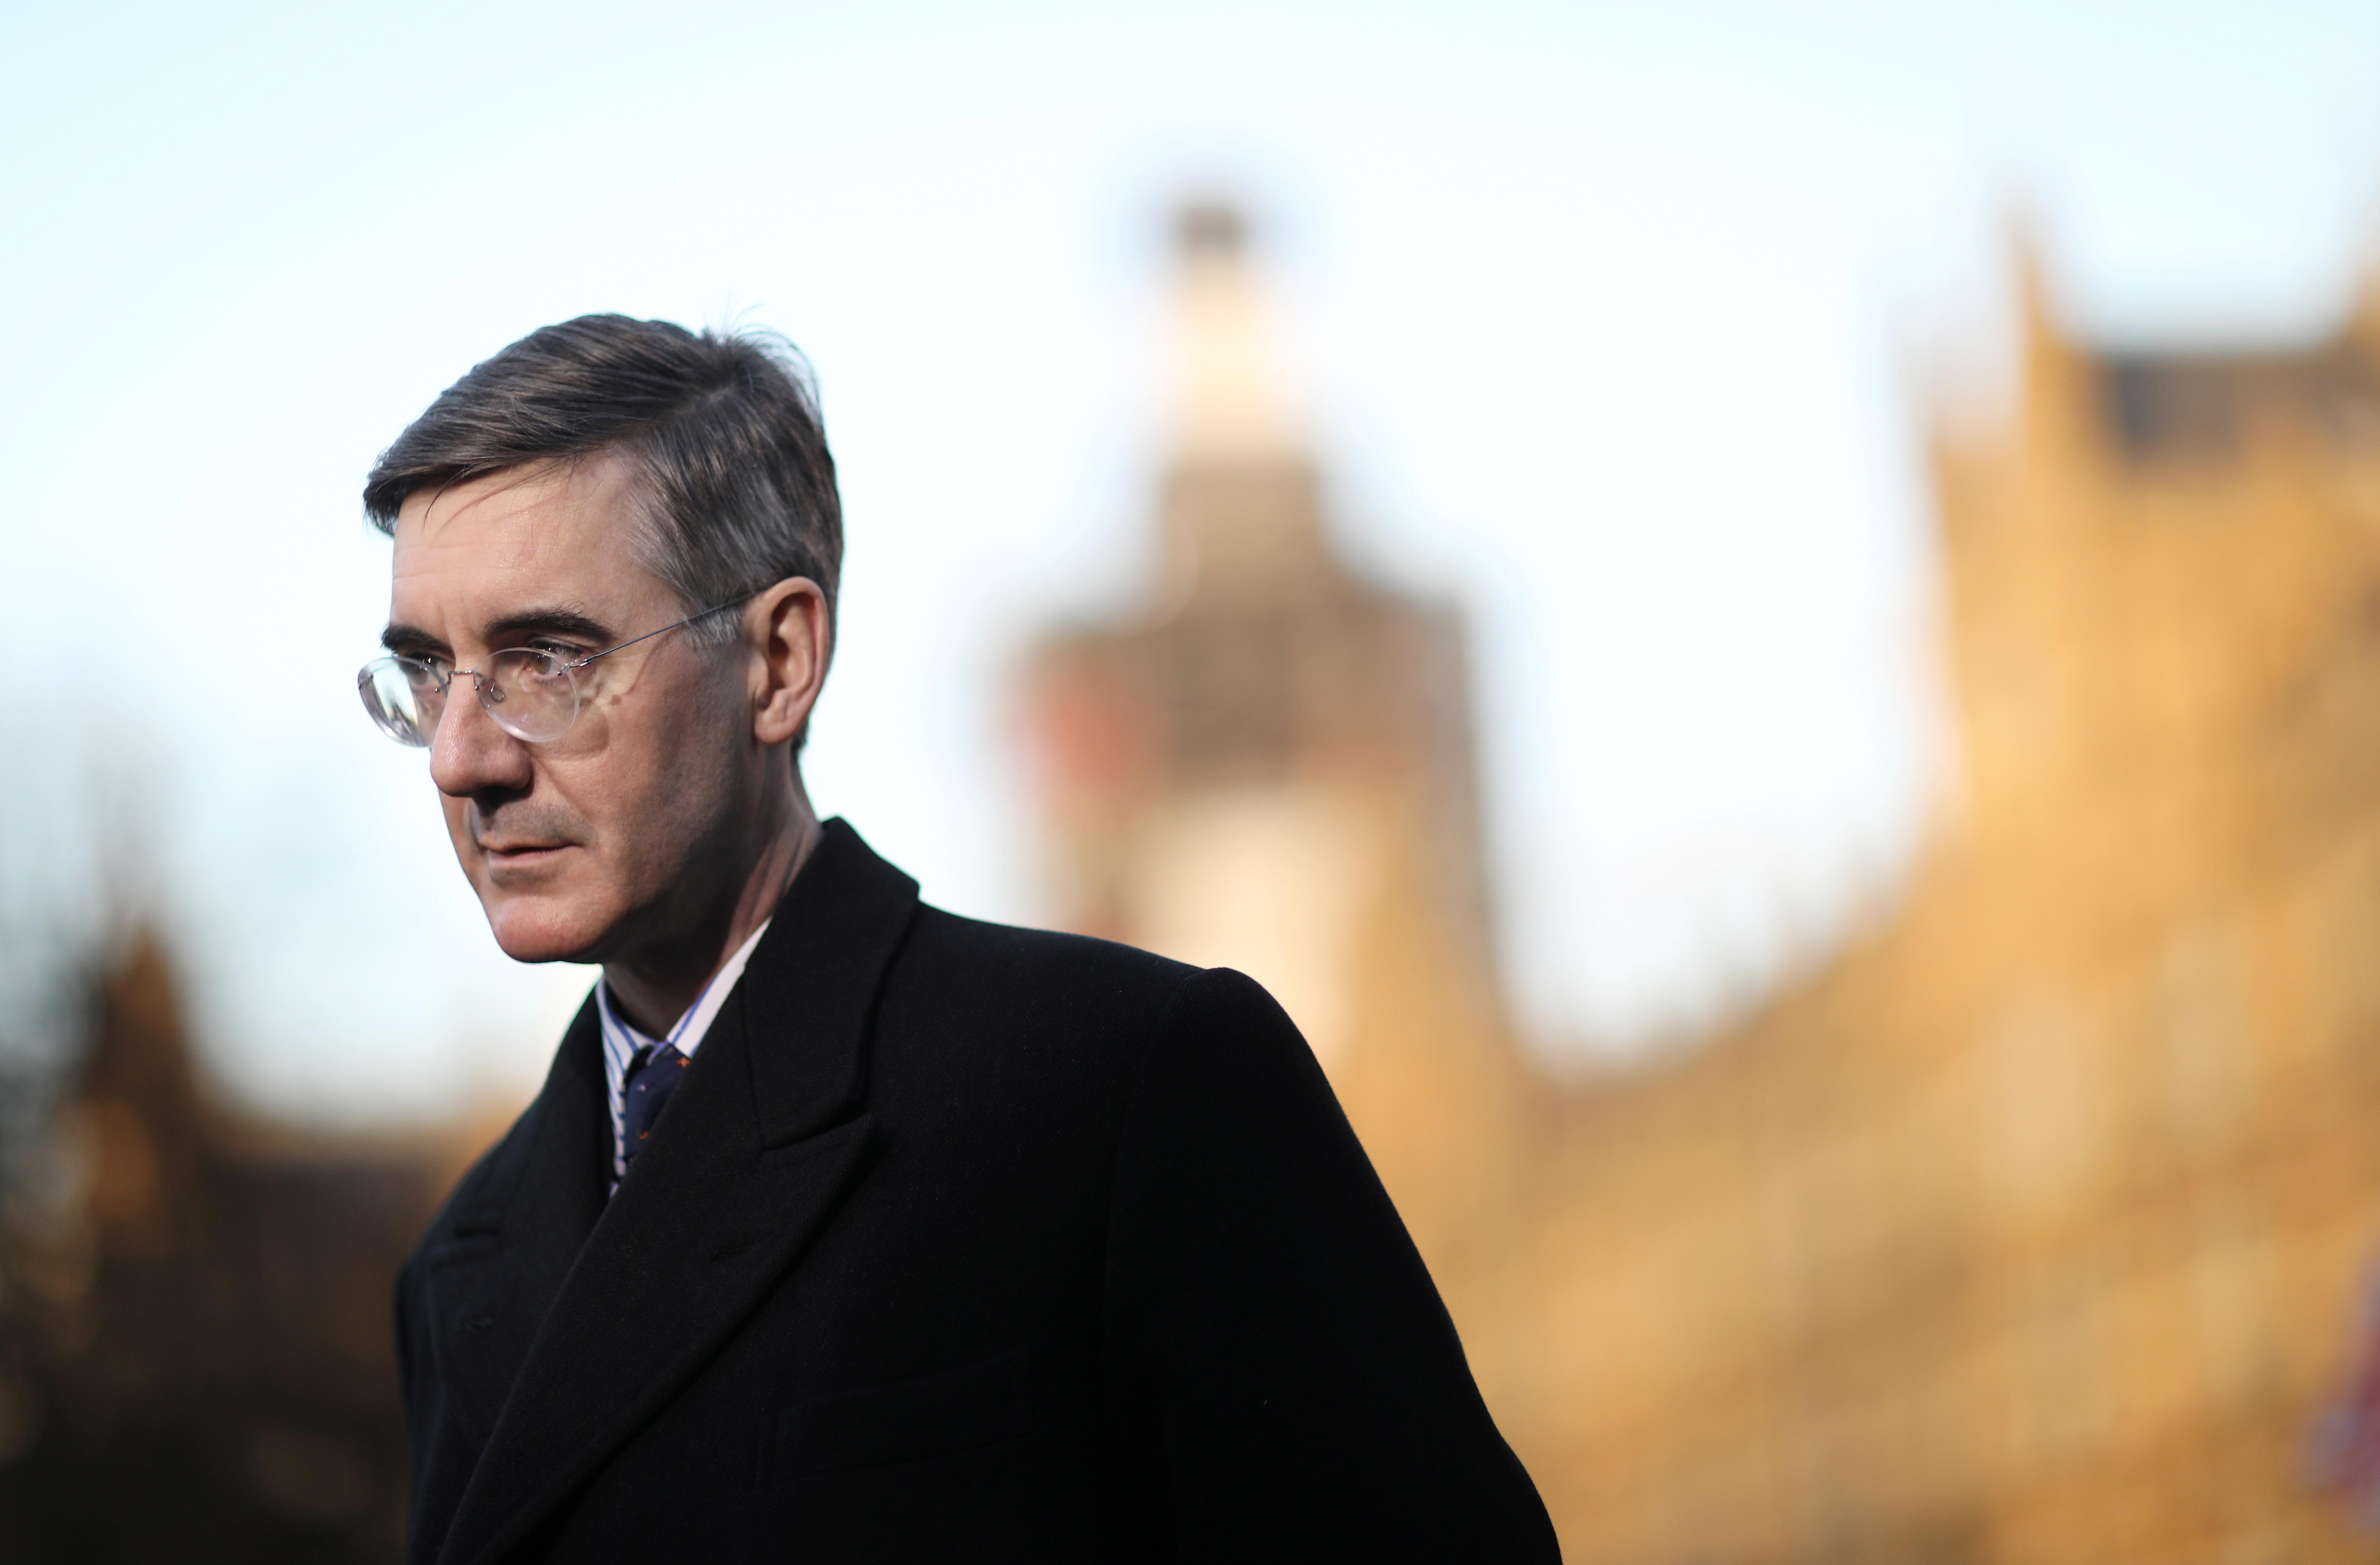 Influential Brexiteer Jacob Rees-Mogg rules out a leadership bid